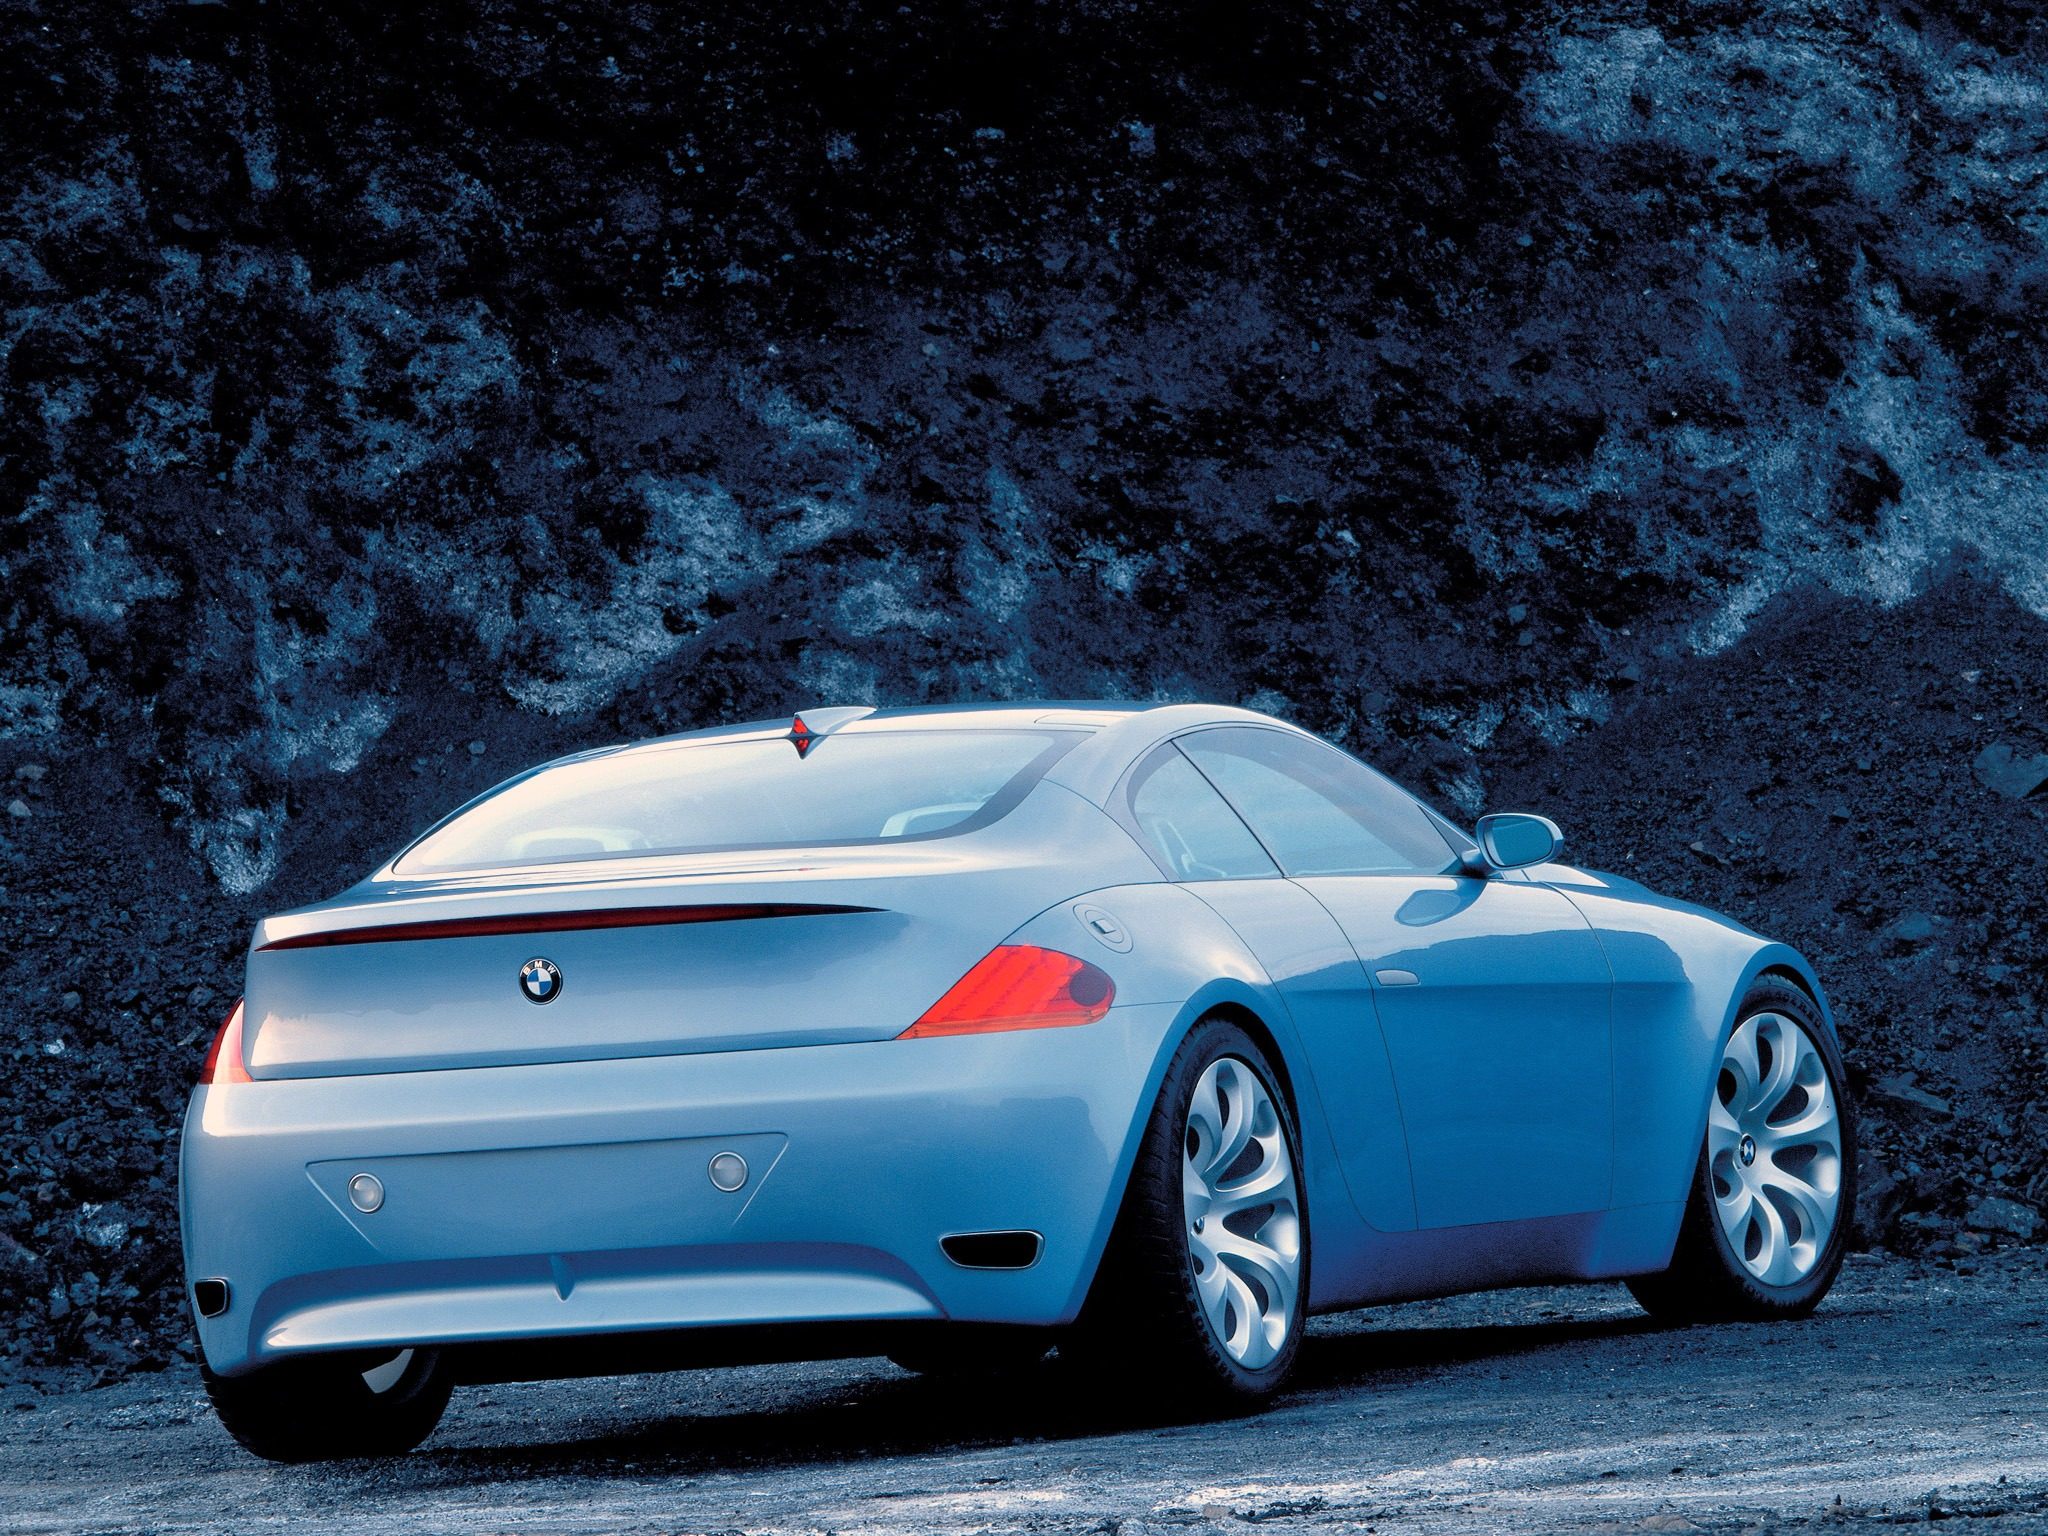 Bmw Z9 1999 Old Concept Cars